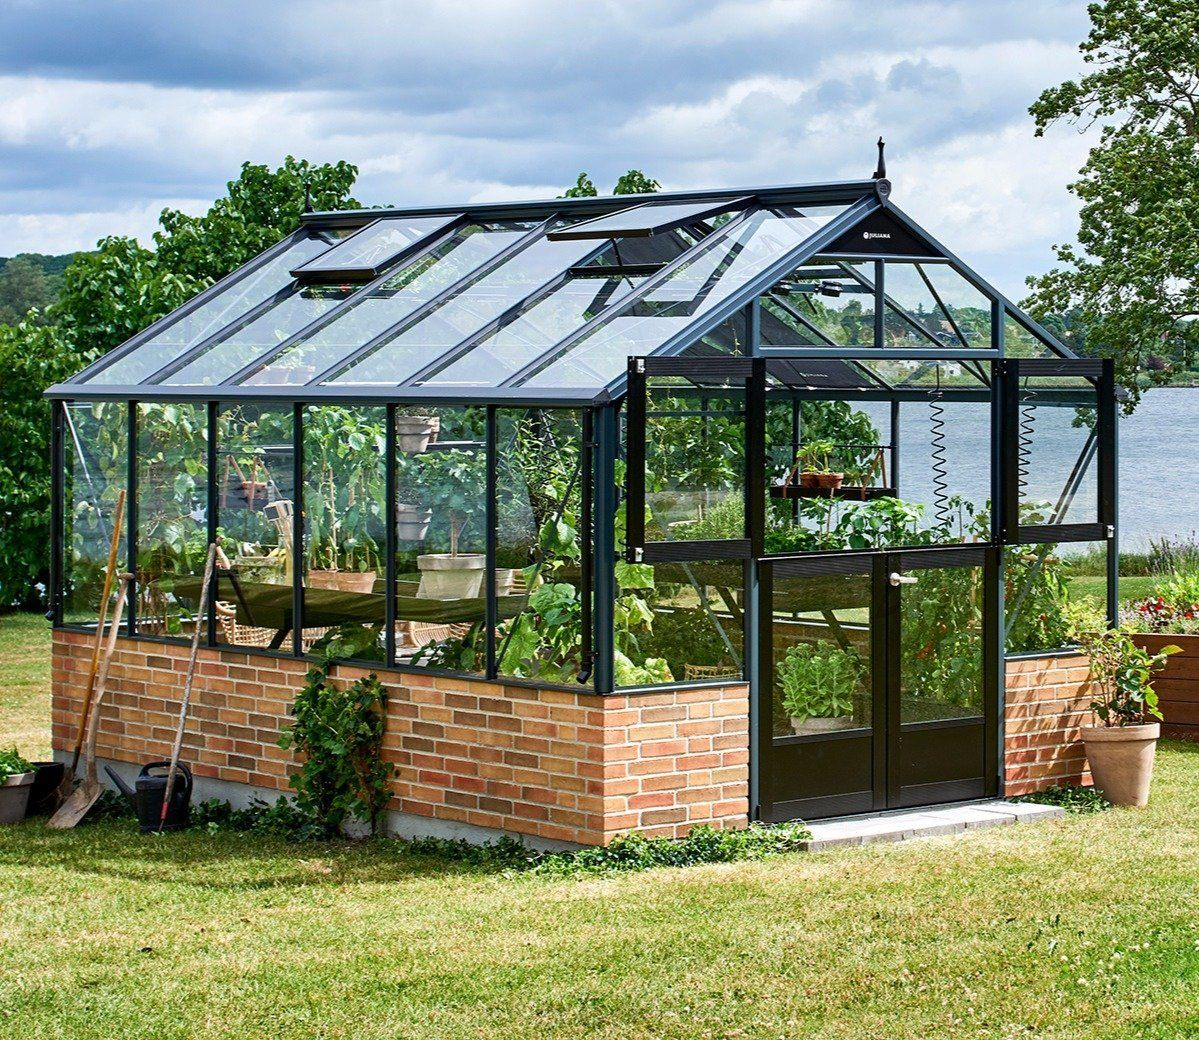 Juliana Premium Dwarf Wall 9 x 14 ft Greenhouse | Backyard ...